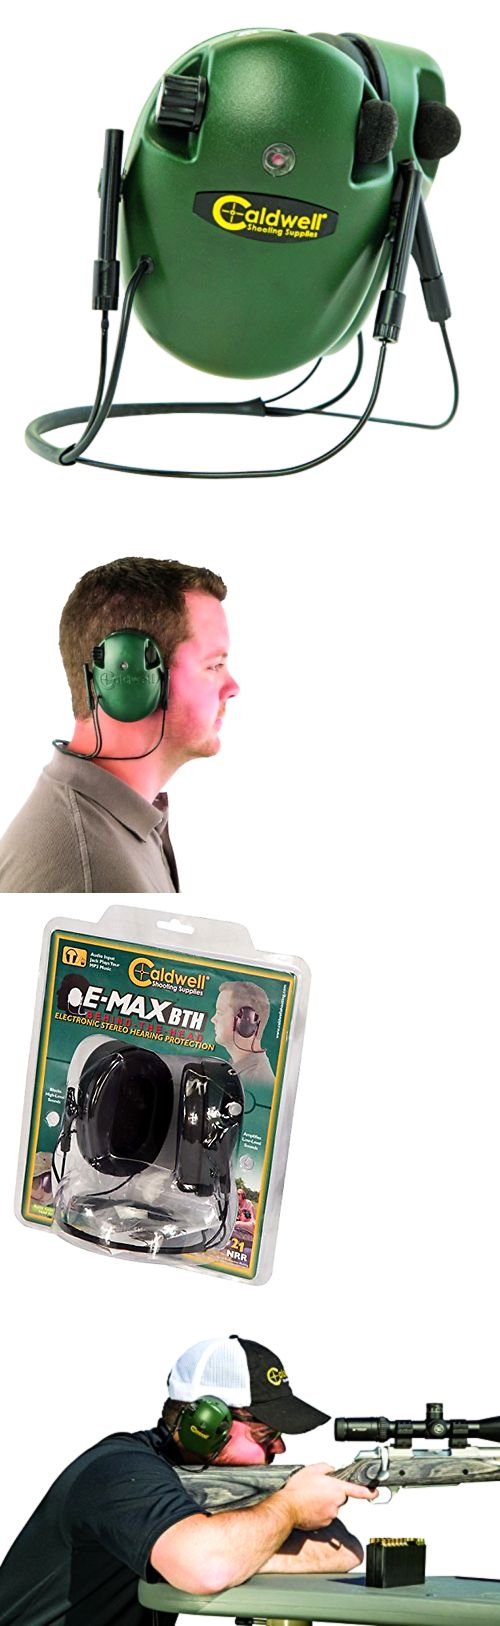 Hearing Protection 73942: Electronic Headphones Ear Muffs Hearing Protection Noise Shooter Shooting Safety -> BUY IT NOW ONLY: $31.2 on eBay!